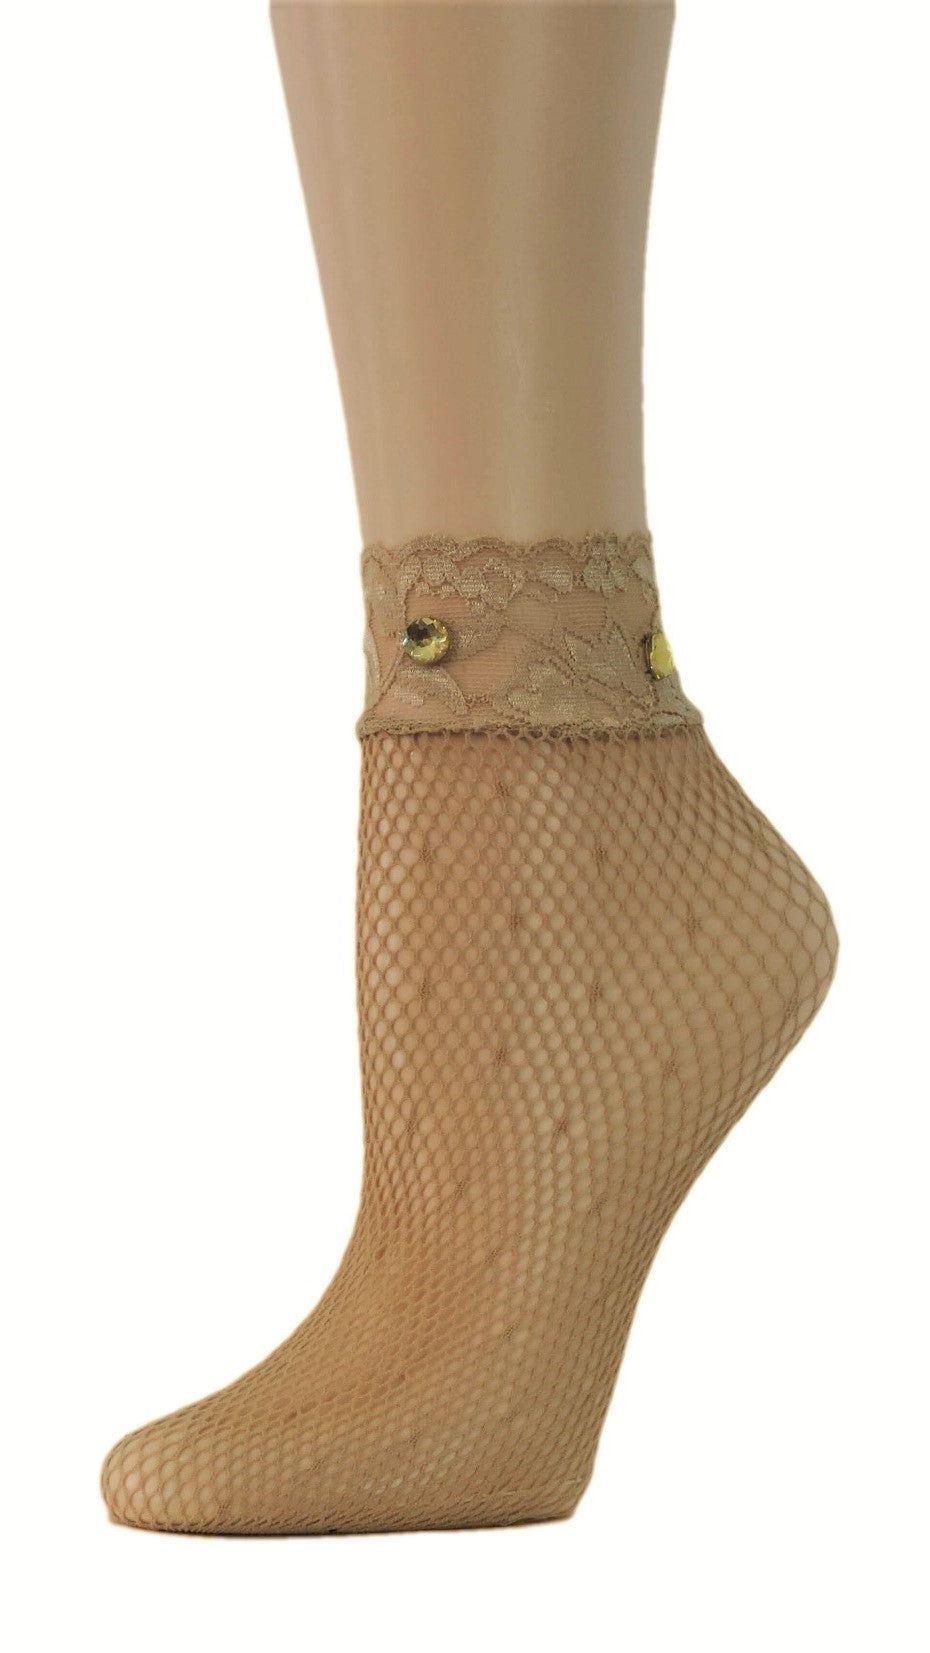 Beige Lace Custom Fishnet Socks with beads - Global Trendz Fashion®